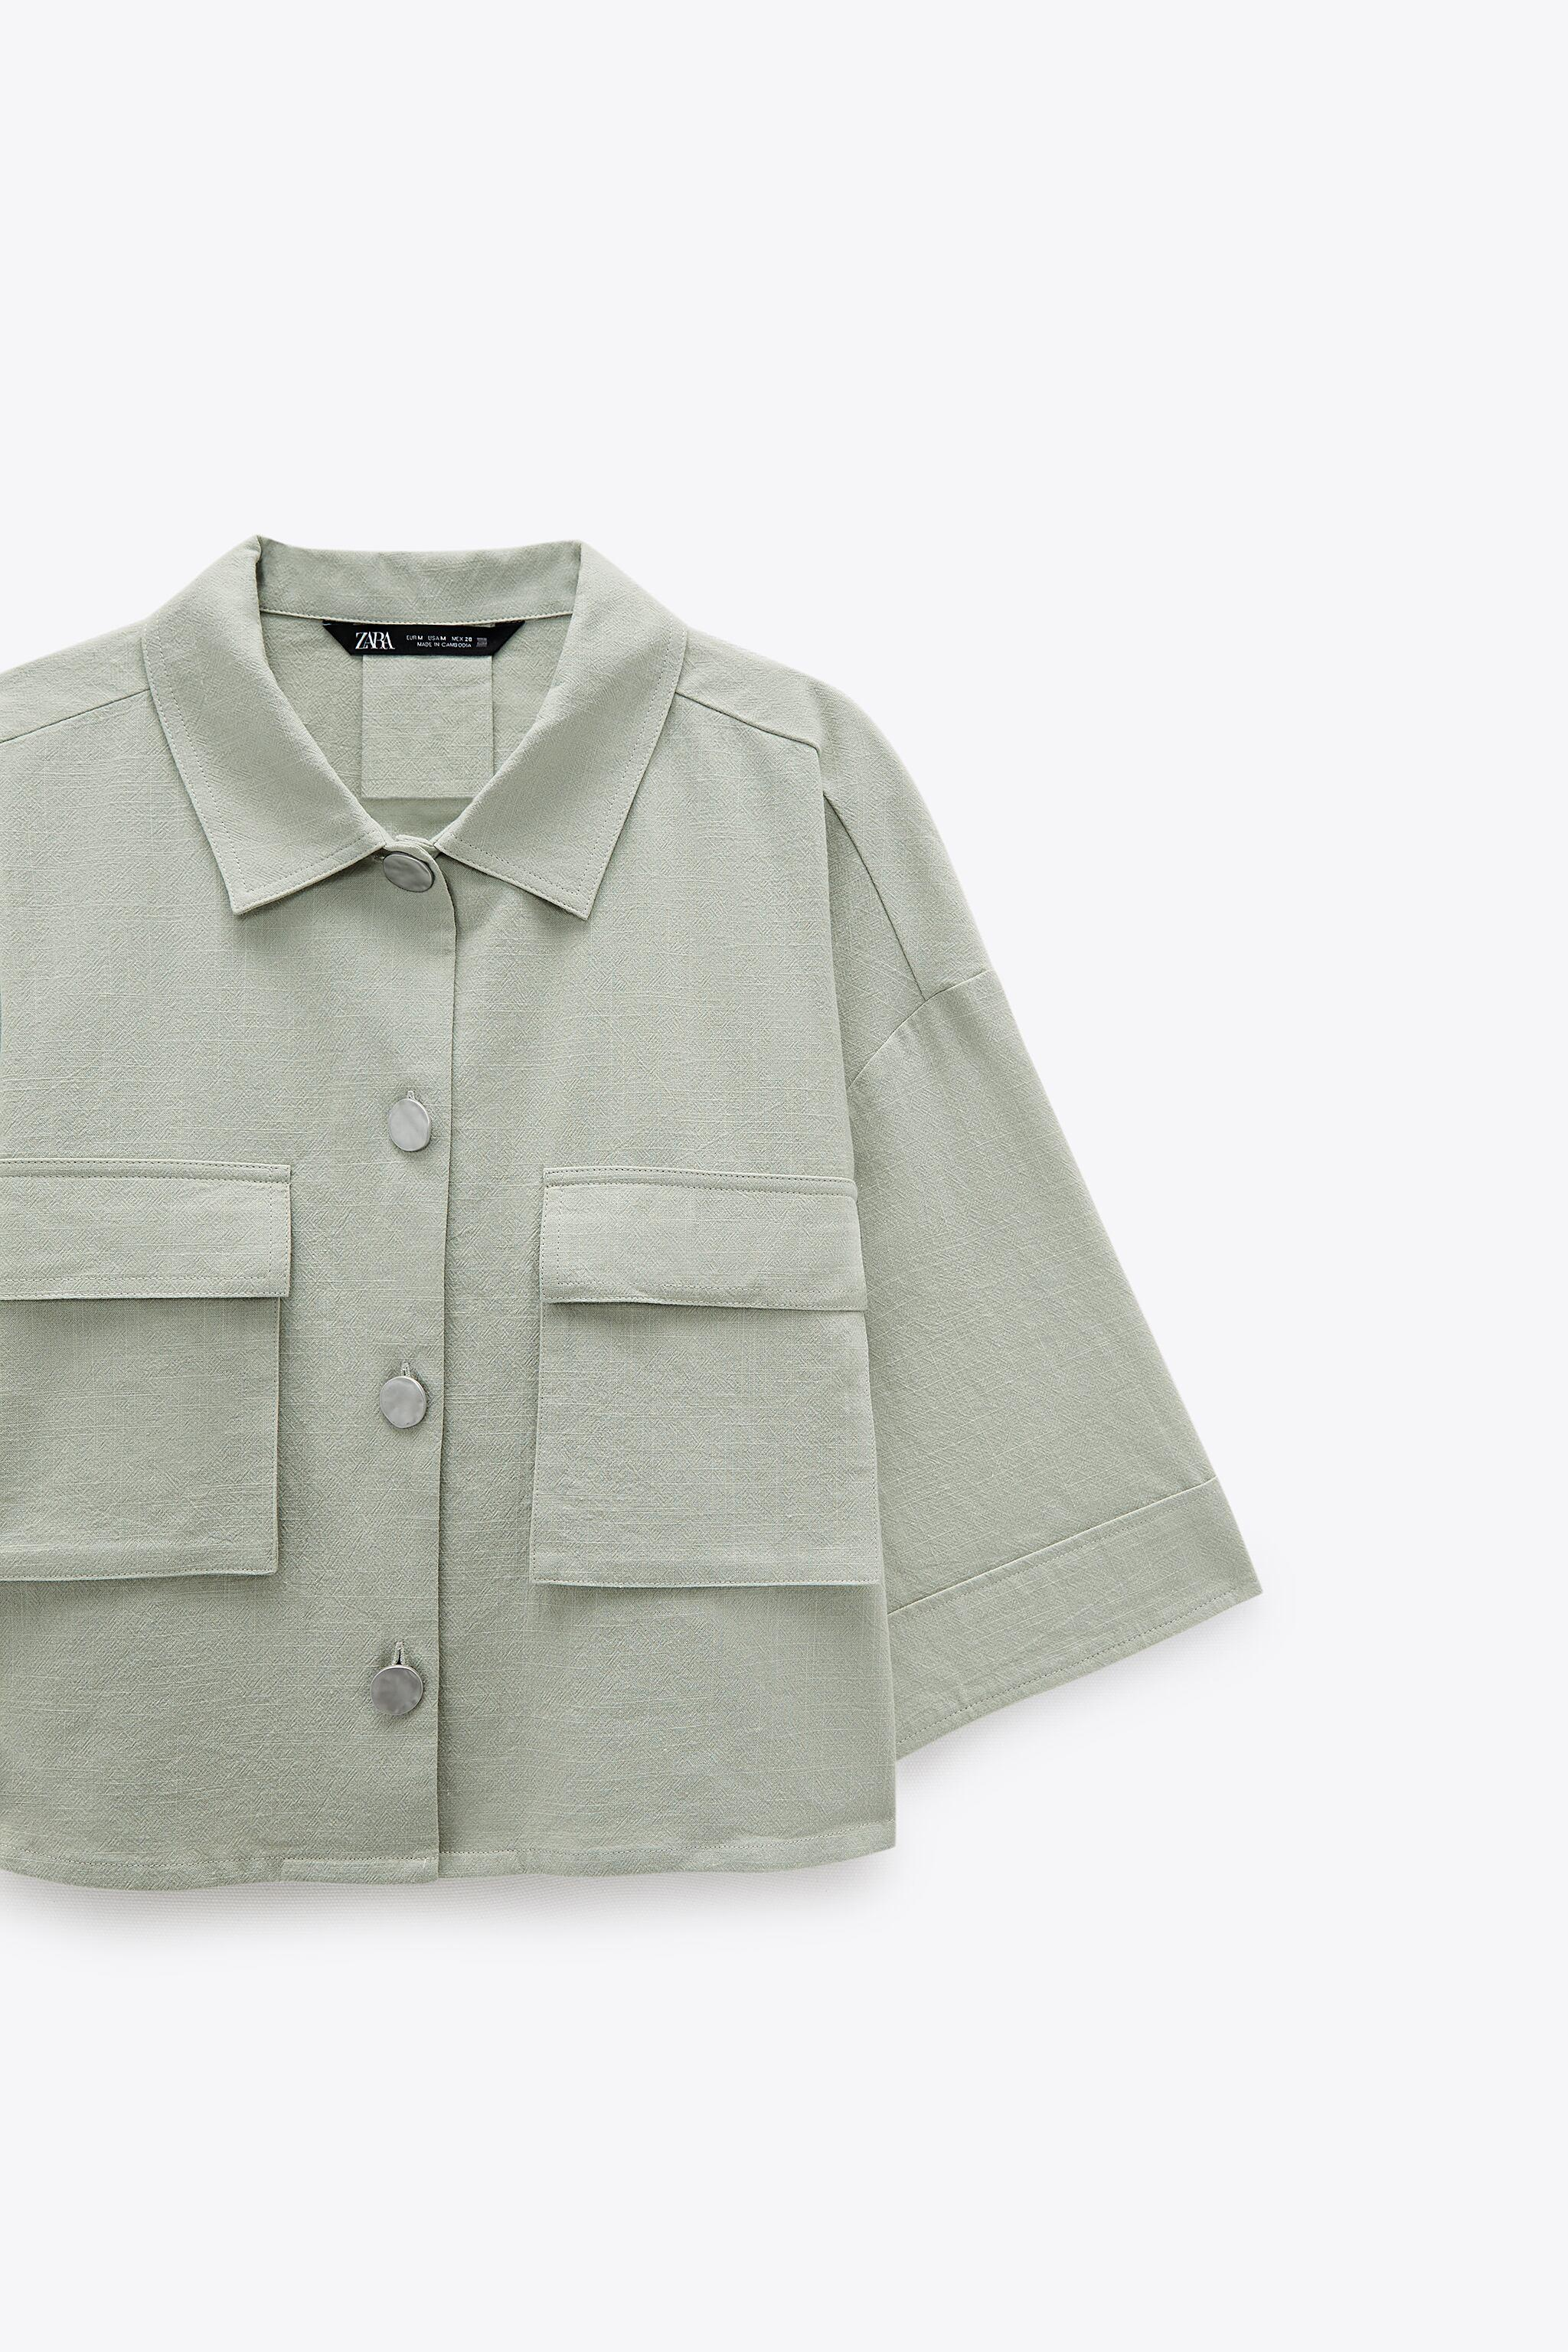 RUSTIC CROPPED SHIRT 6